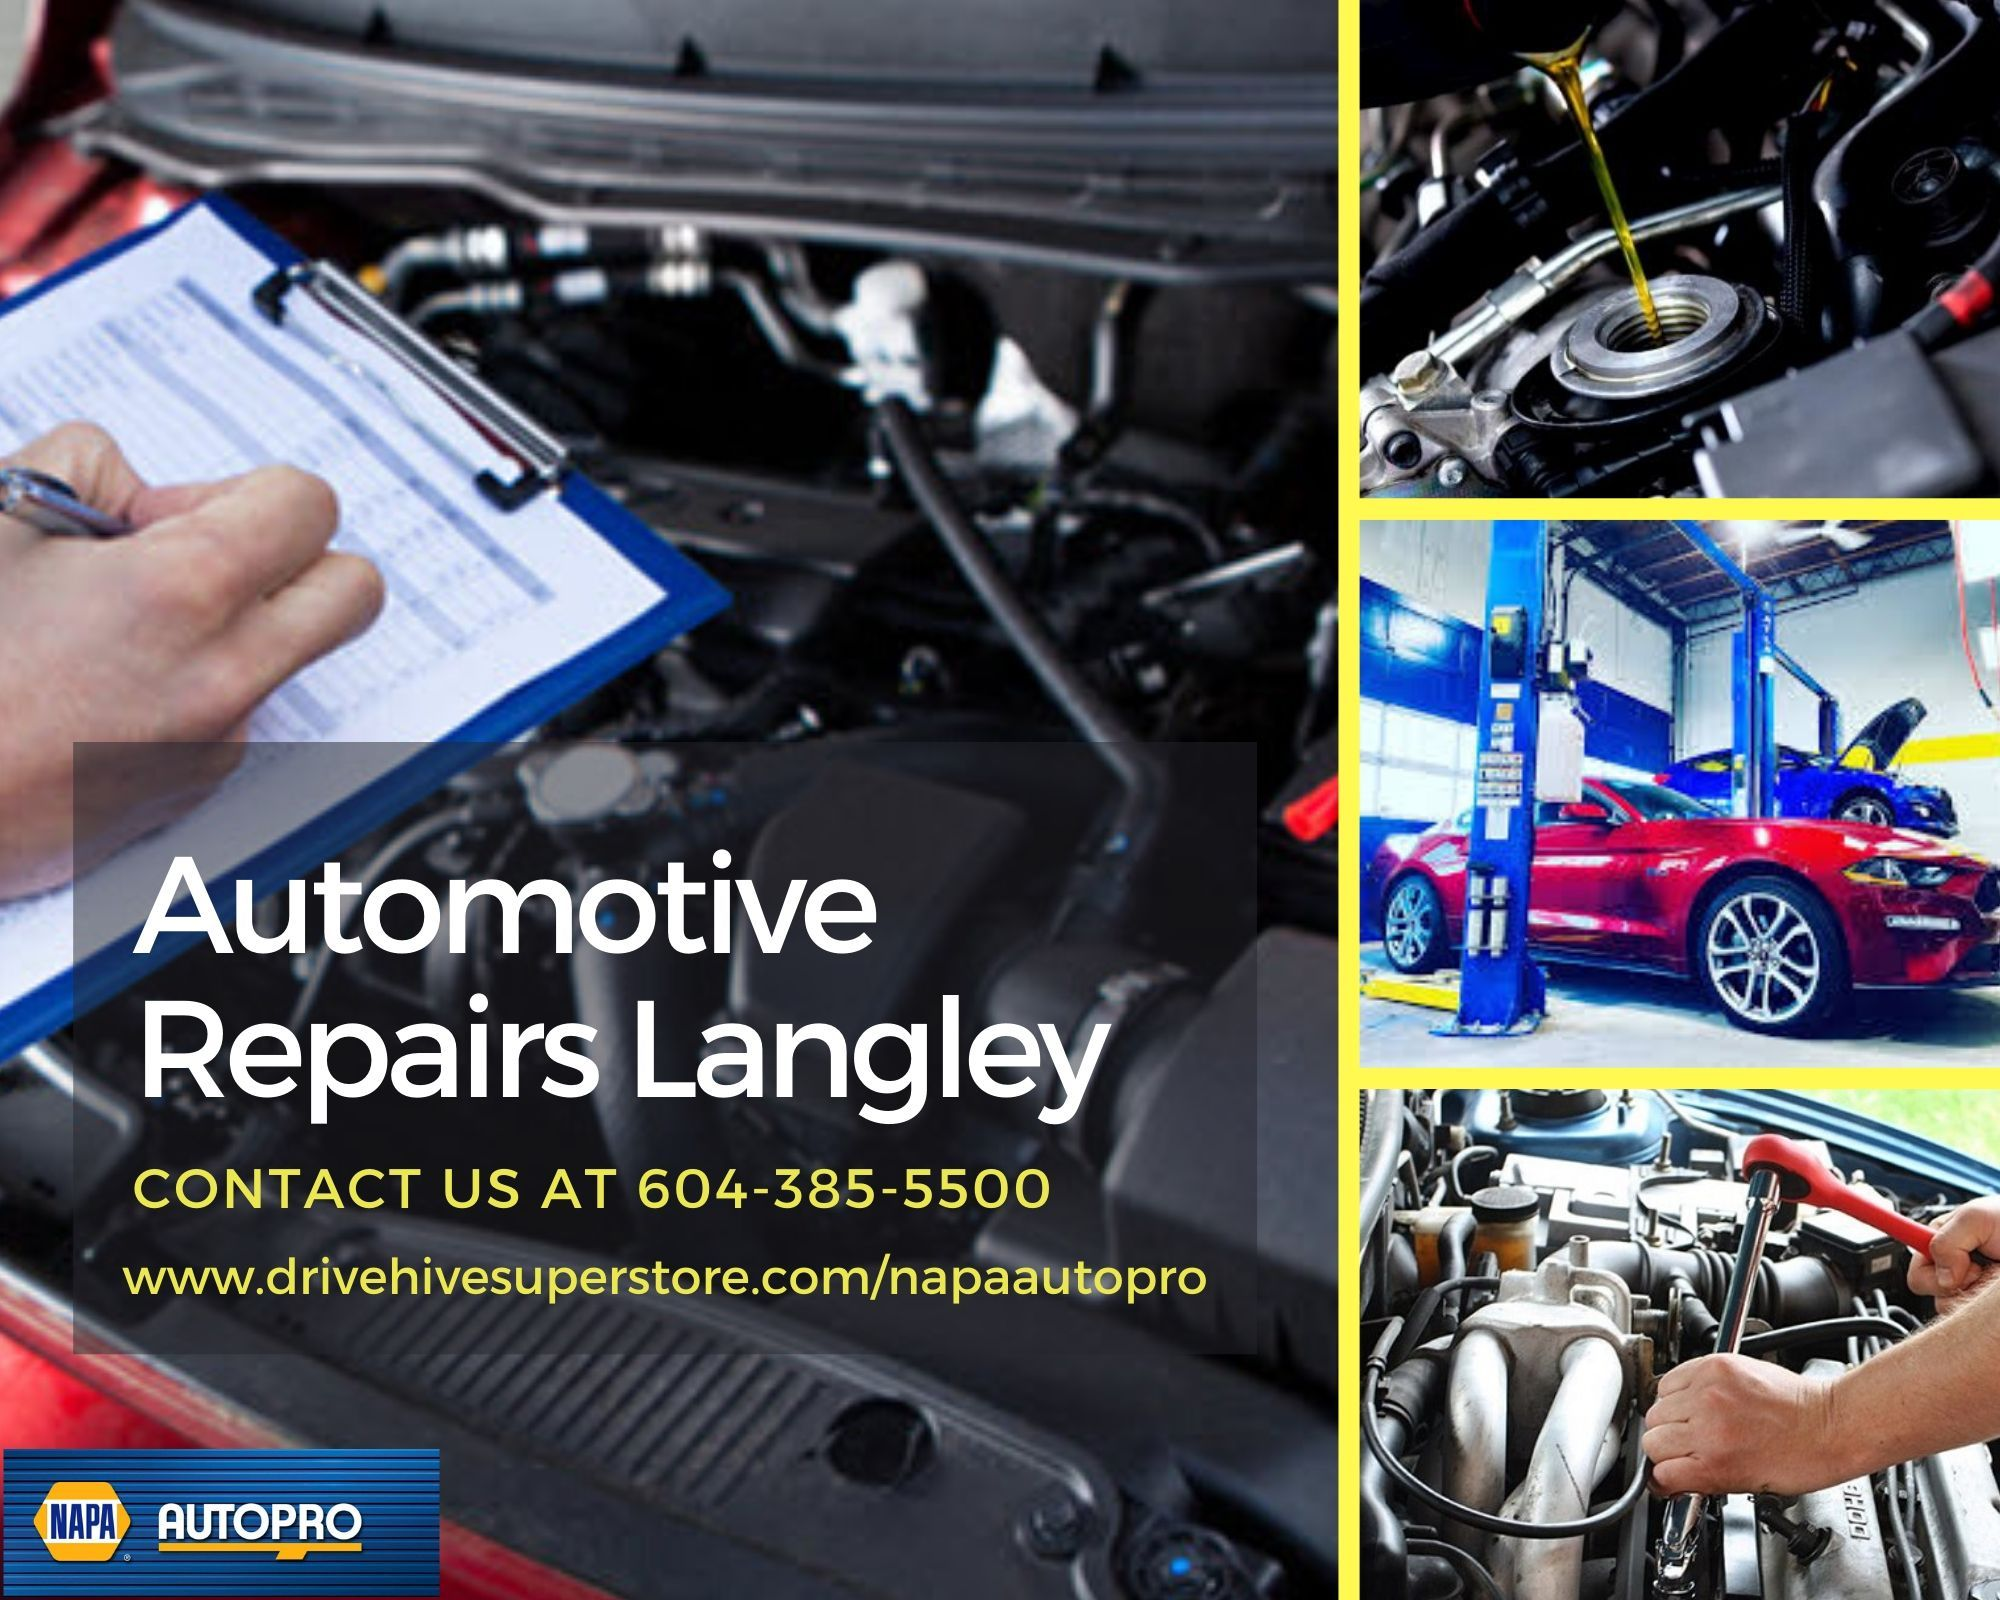 Automotive Car Repairs in Langley BC in 2020 Automotive